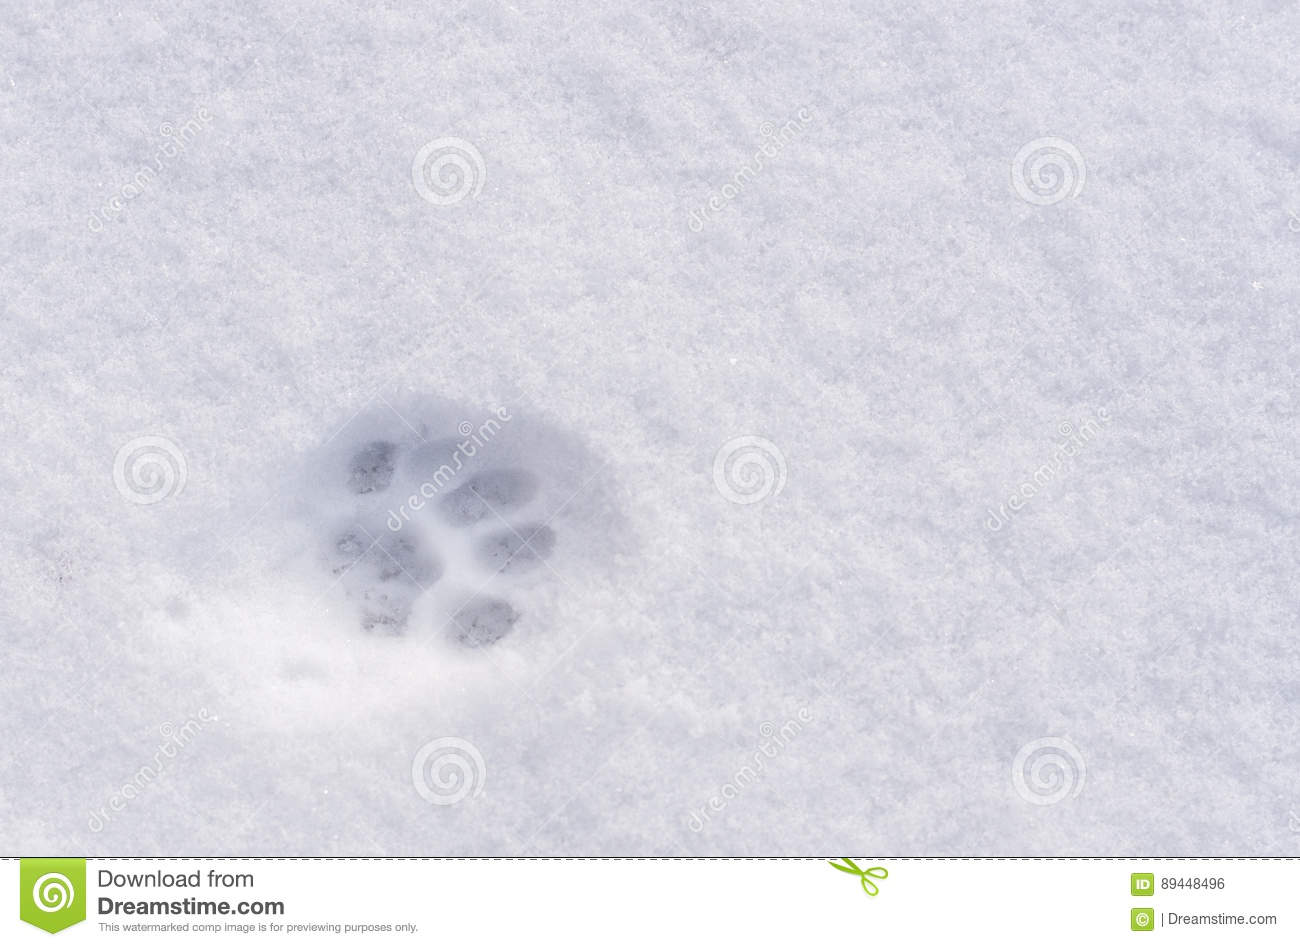 An Animal Footprint In The Snow Stock Photo - Image of shape